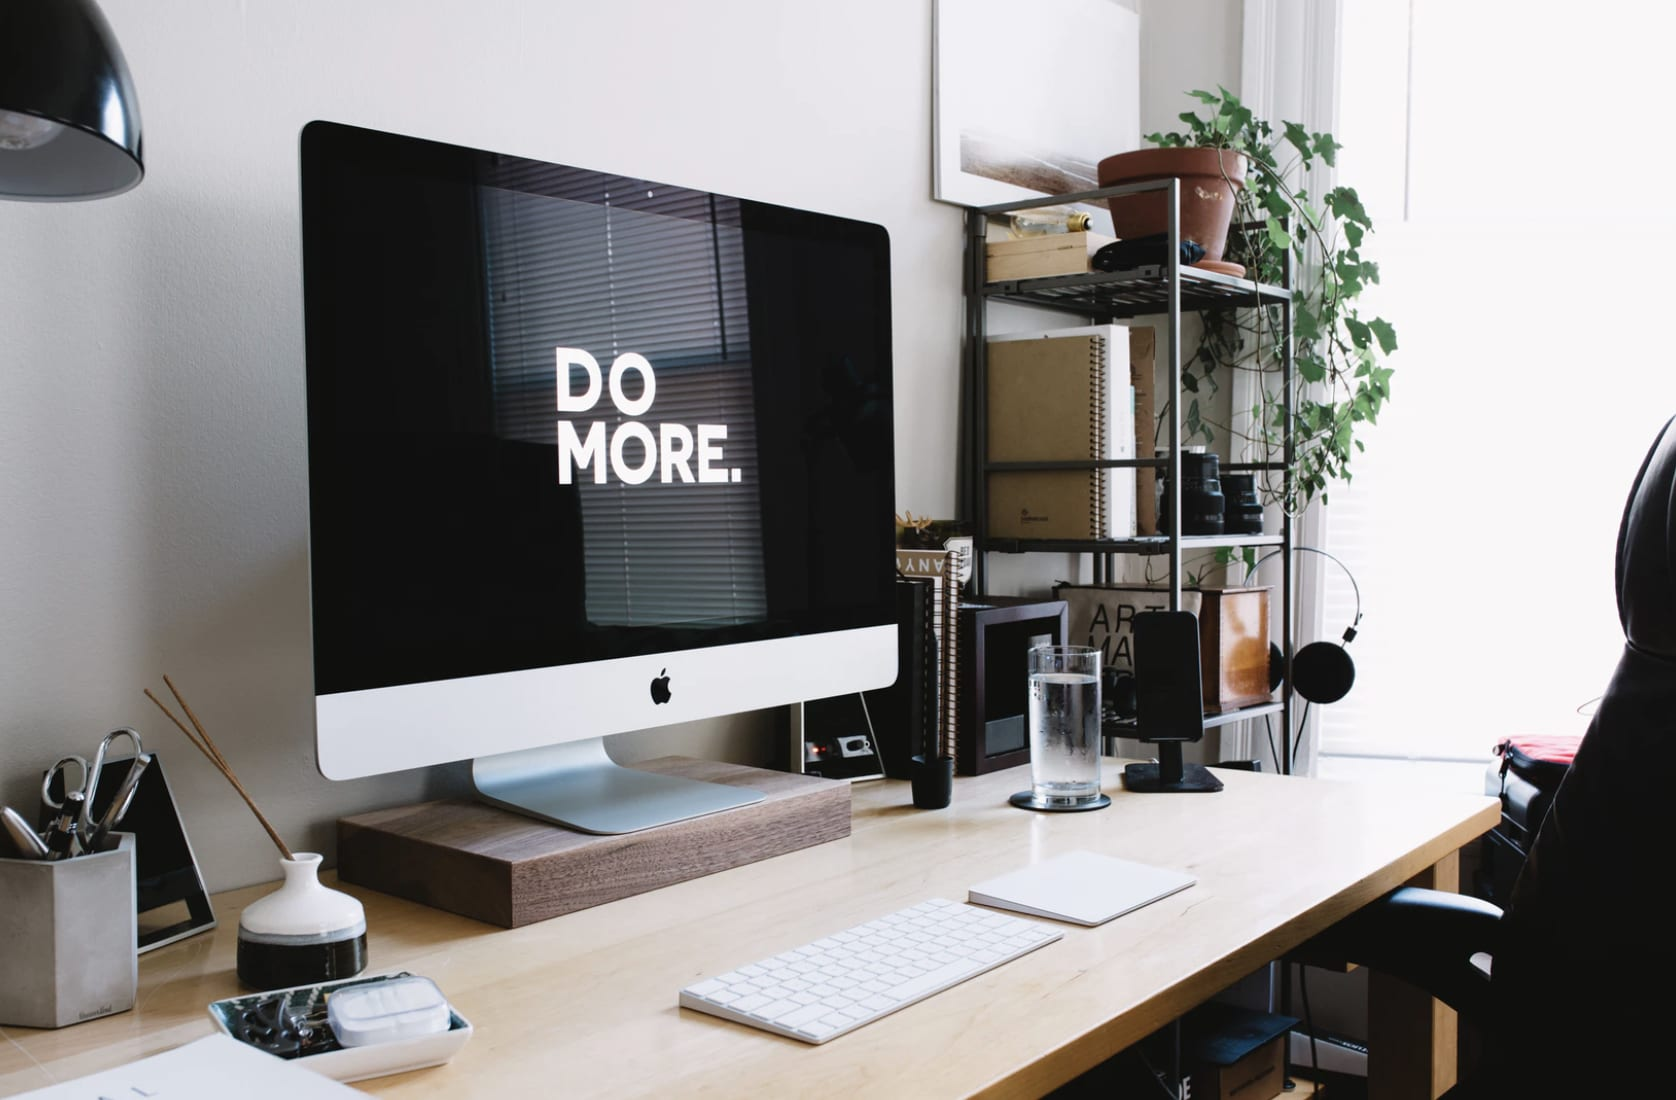 10 Tips to Productively Work From Home